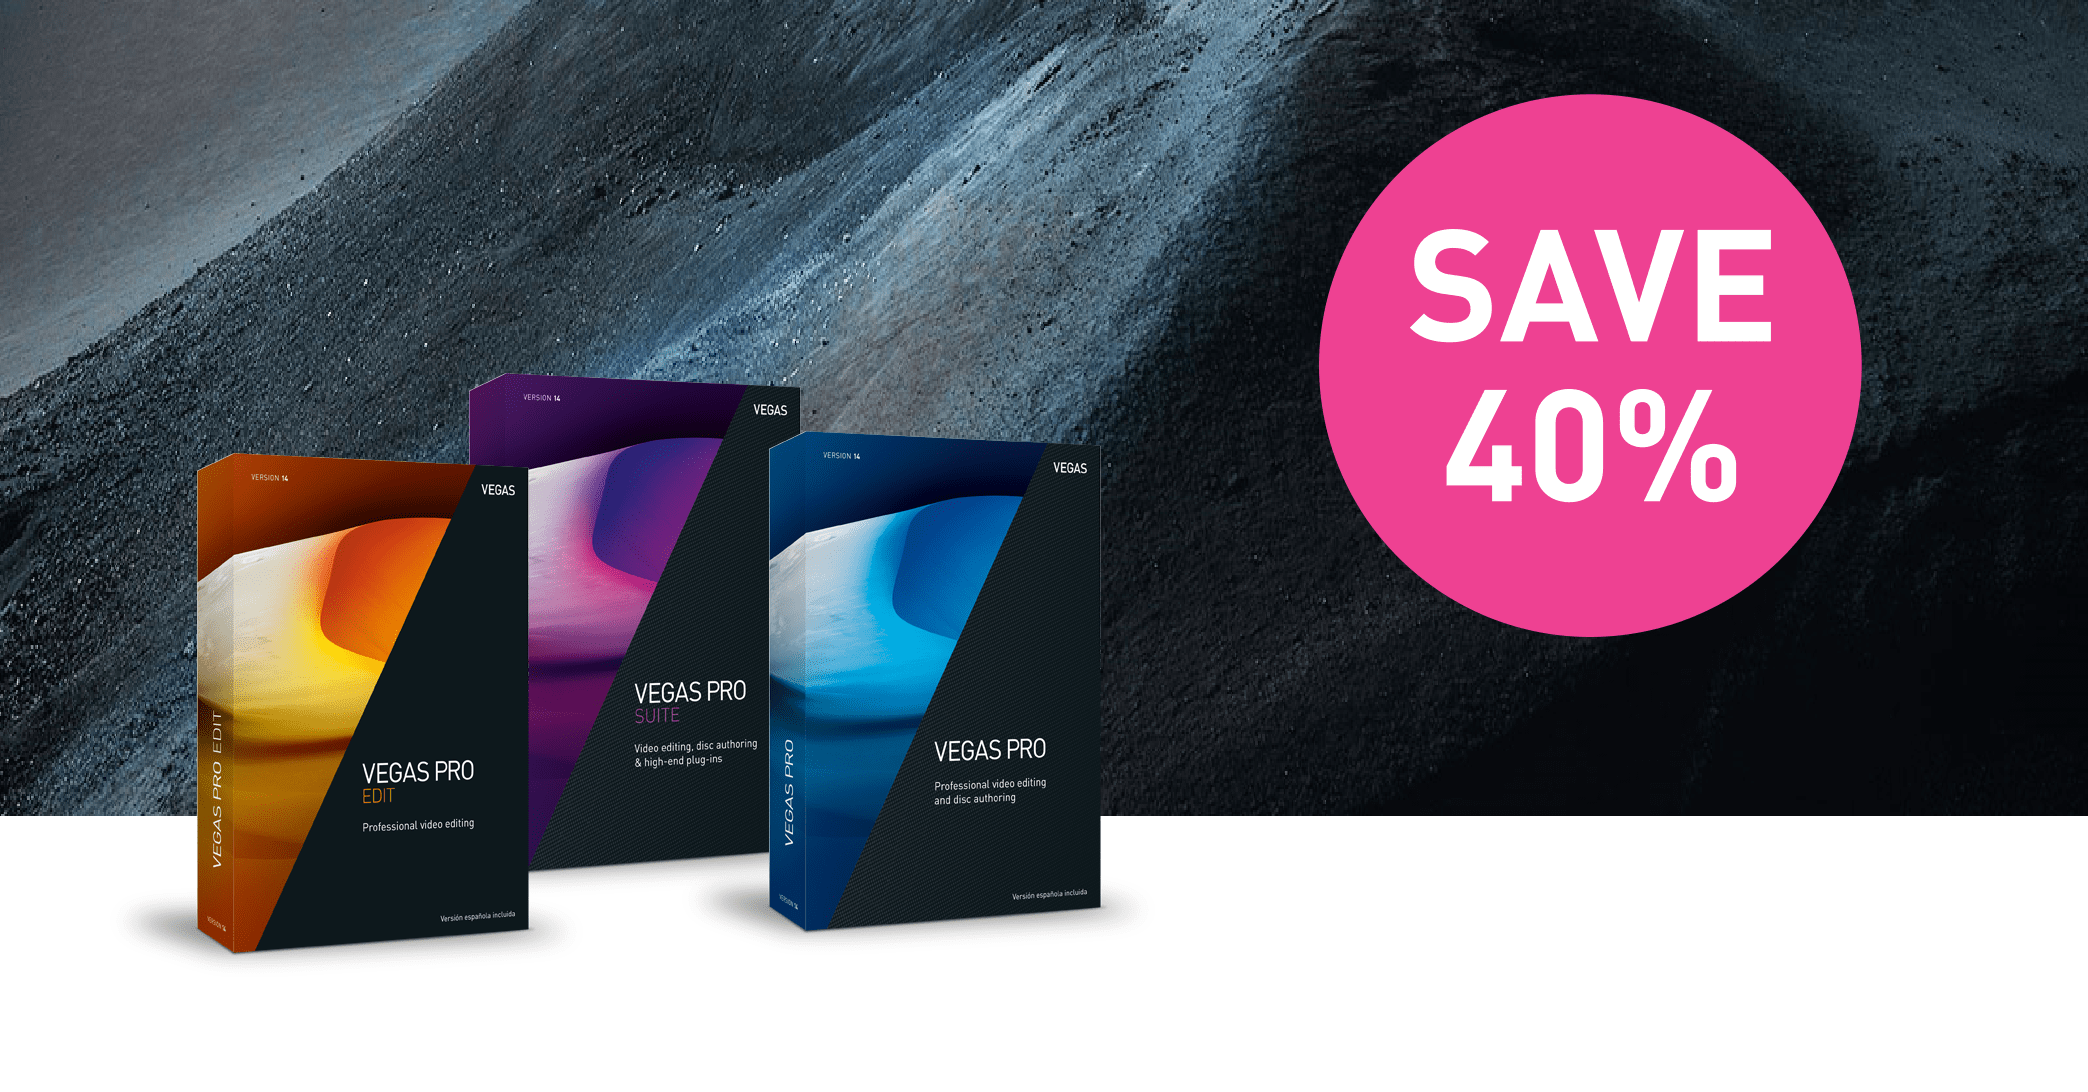 The Friday Roundup – Magix Offering 40% Discount on Vegas Pro Line